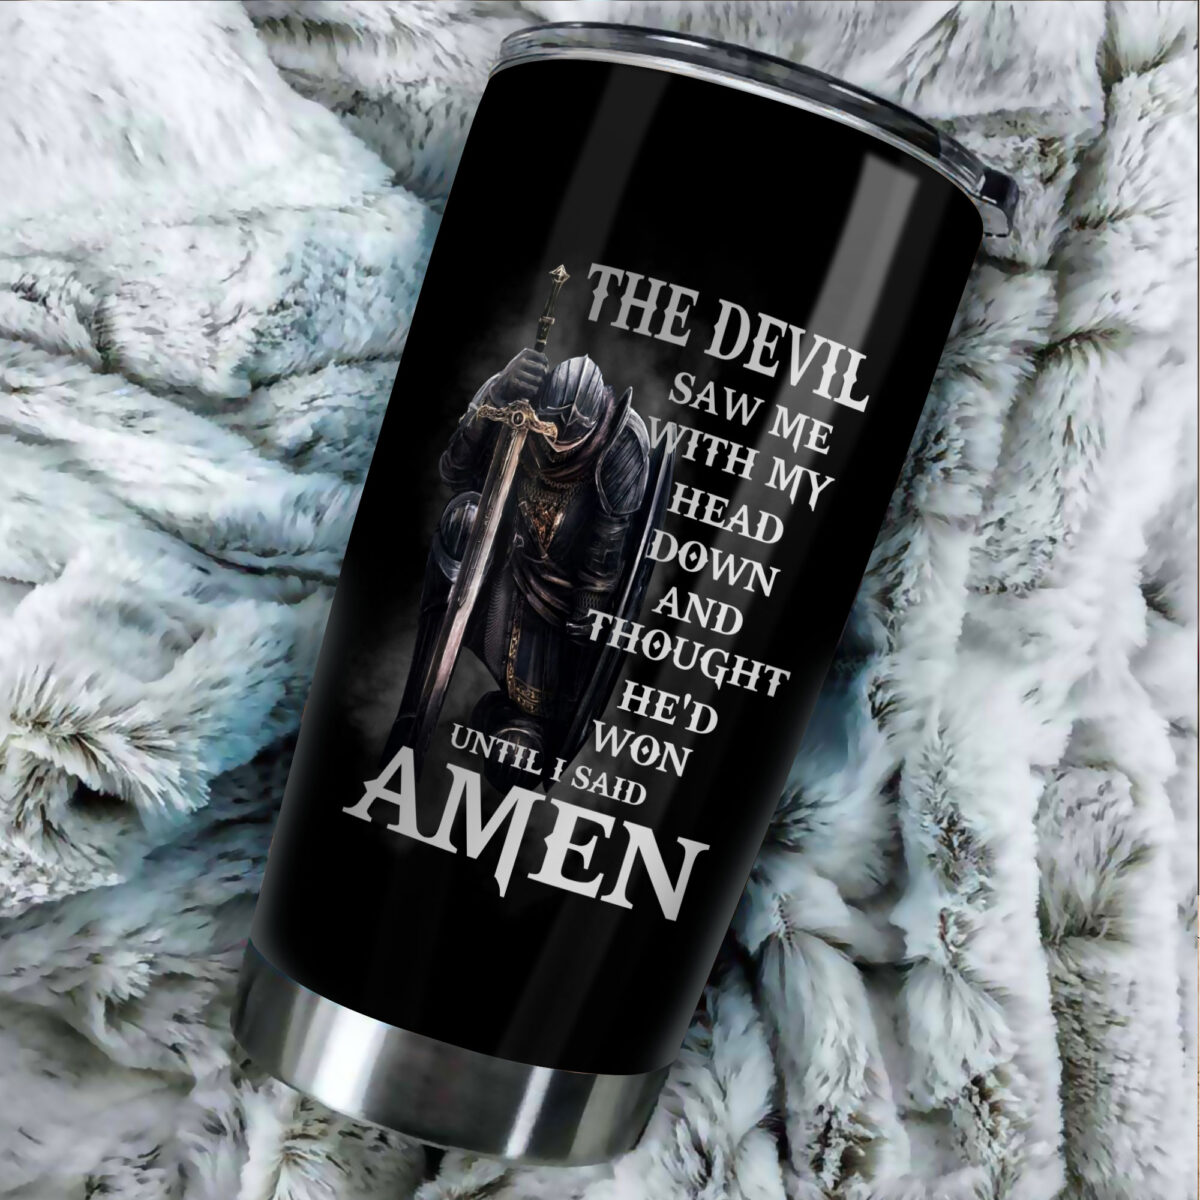 knights templar the devil saw me with my head down and thought hed won until i said amen stainless steel tumbler 5